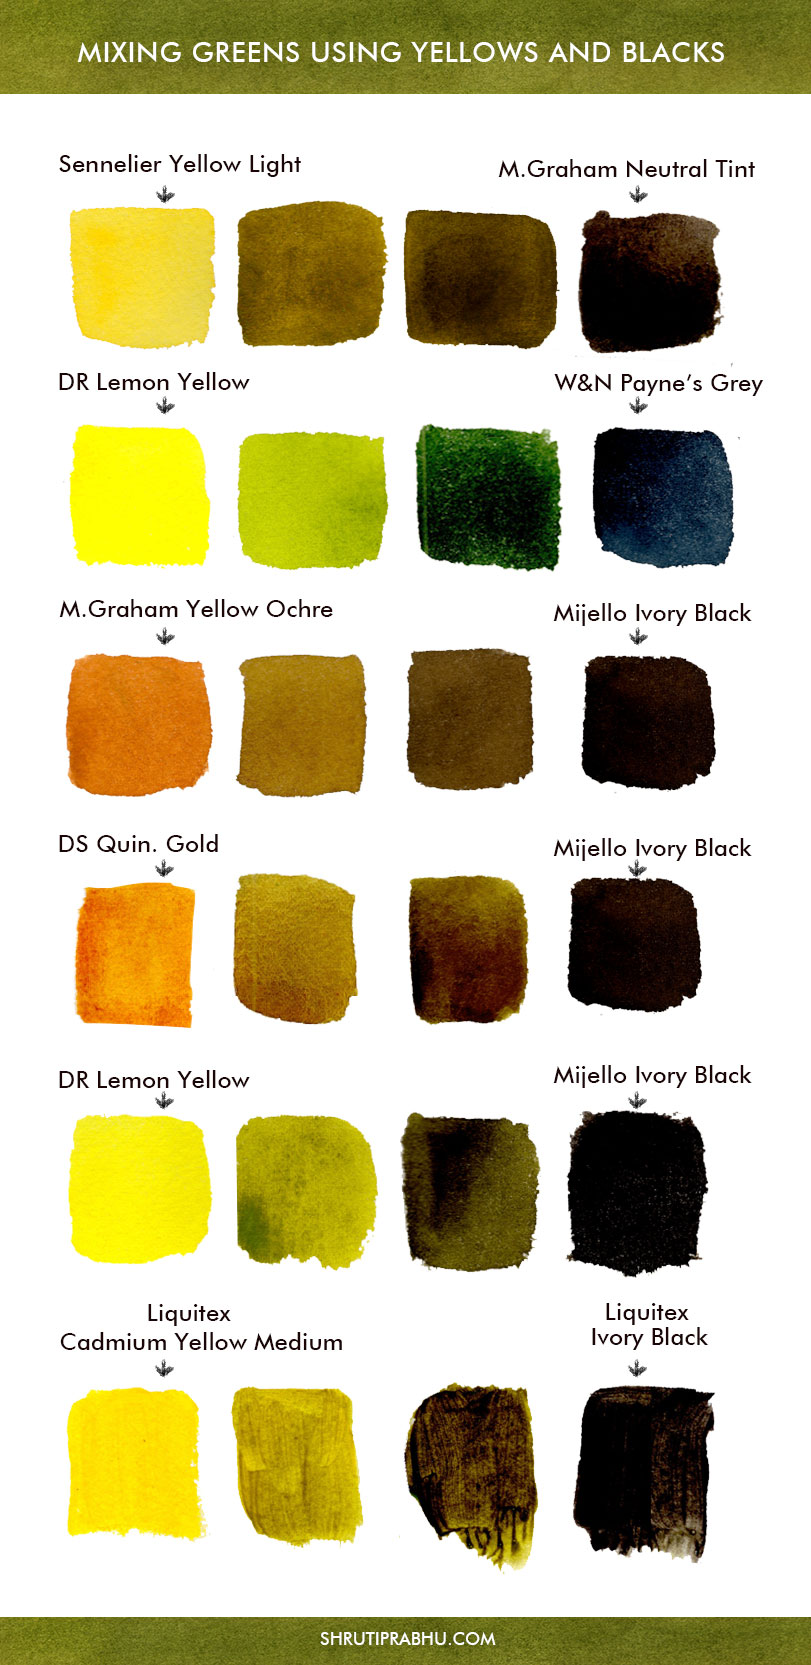 Mixing Greens using Yellows and Blacks